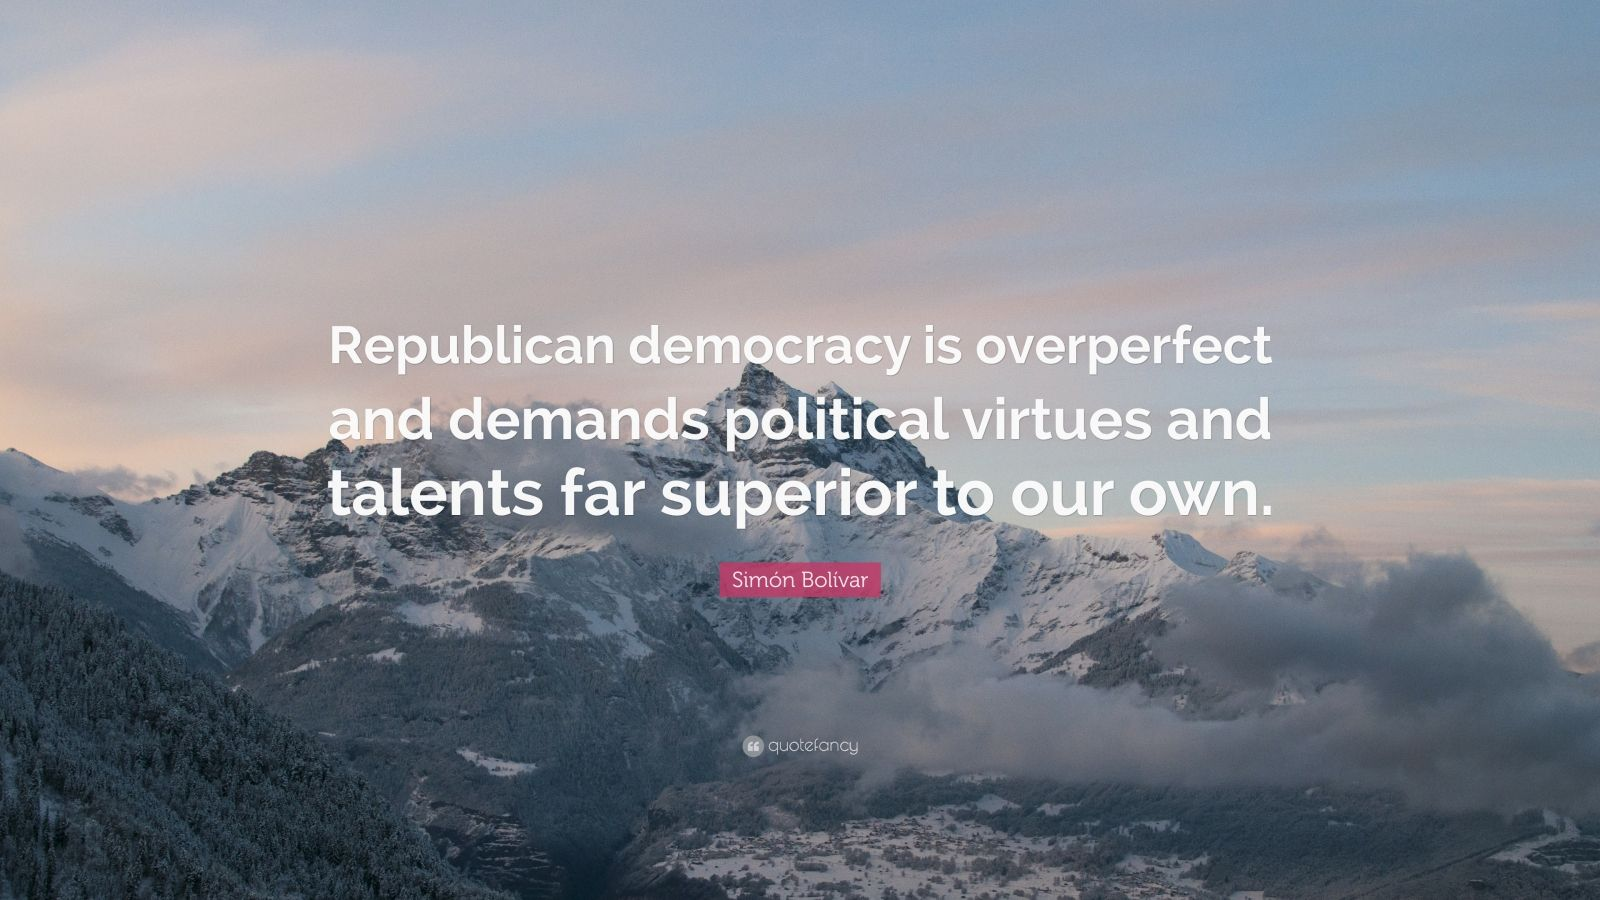 """Simón Bolívar Quote: """"Republican democracy is overperfect and demands political virtues and talents far superior to our own."""""""